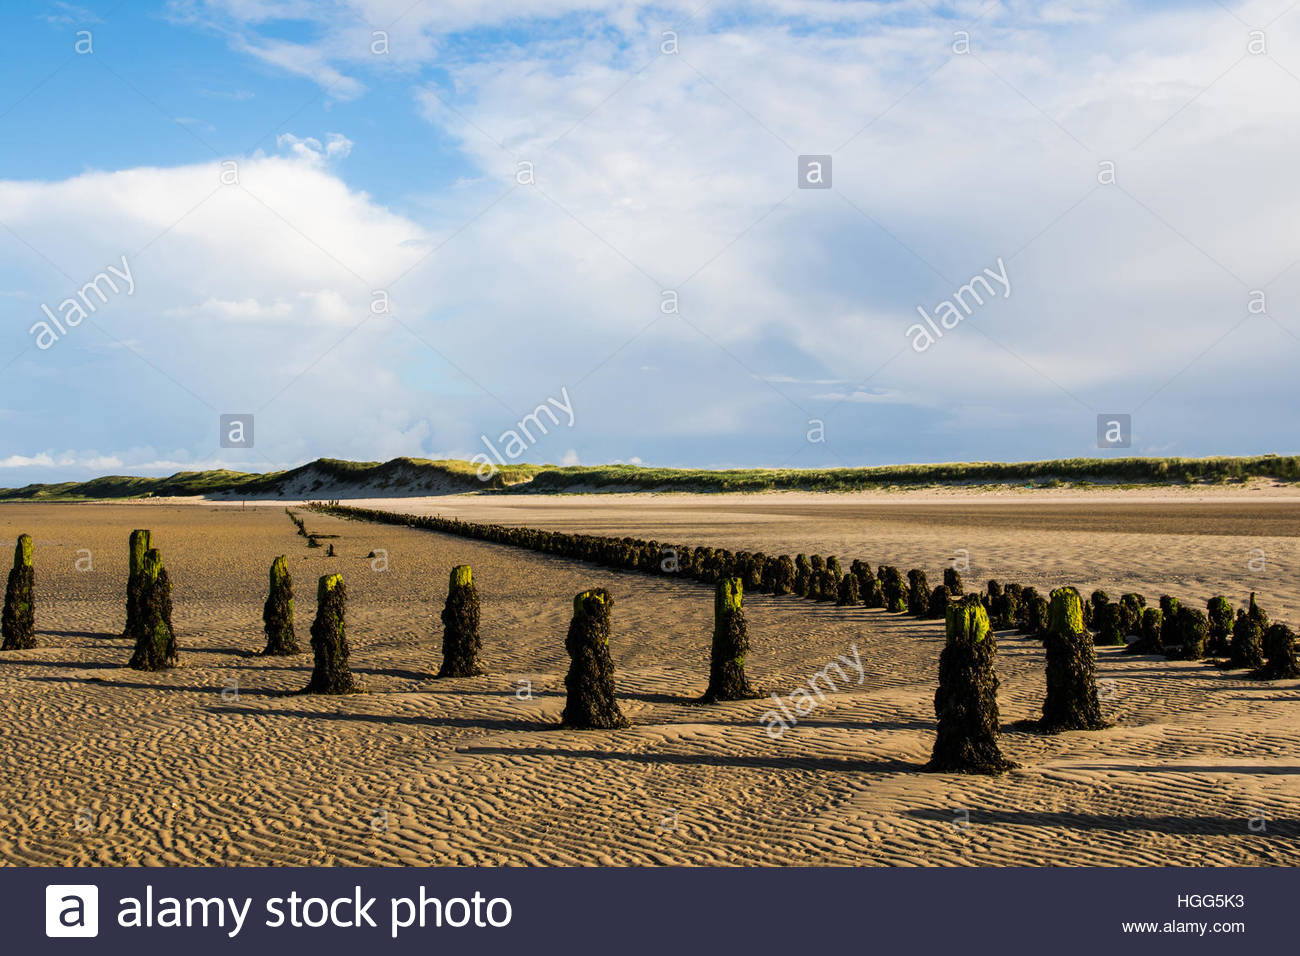 former ostanleger, wangerooge, friesland district, lower saxony, north sea, germany, june 2016 Stock Photo